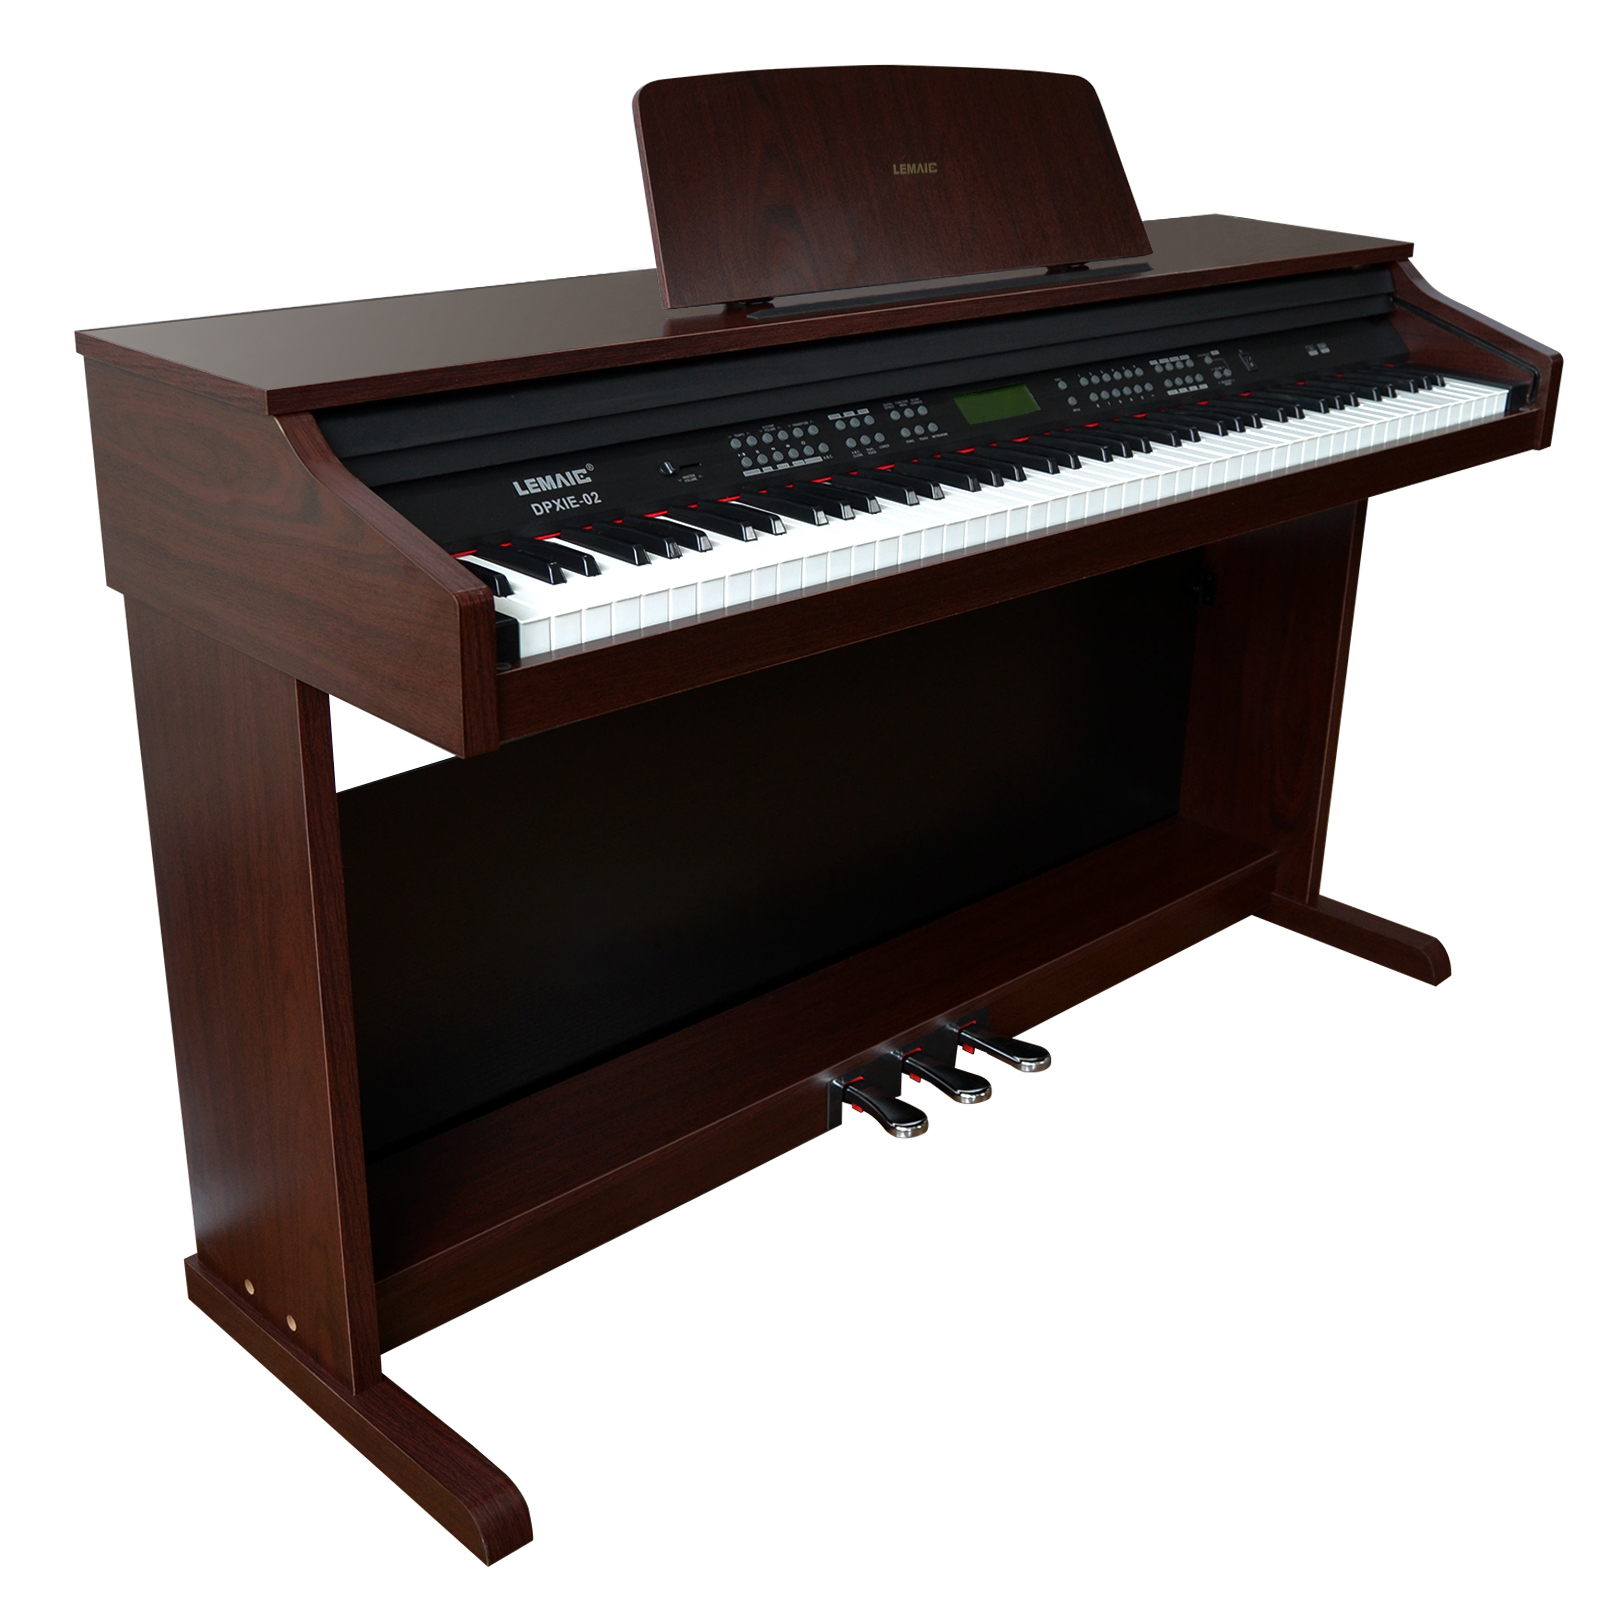 music 88 key electric digital lcd piano keyboard with stand adapter 3pedal board 711639632981 ebay. Black Bedroom Furniture Sets. Home Design Ideas